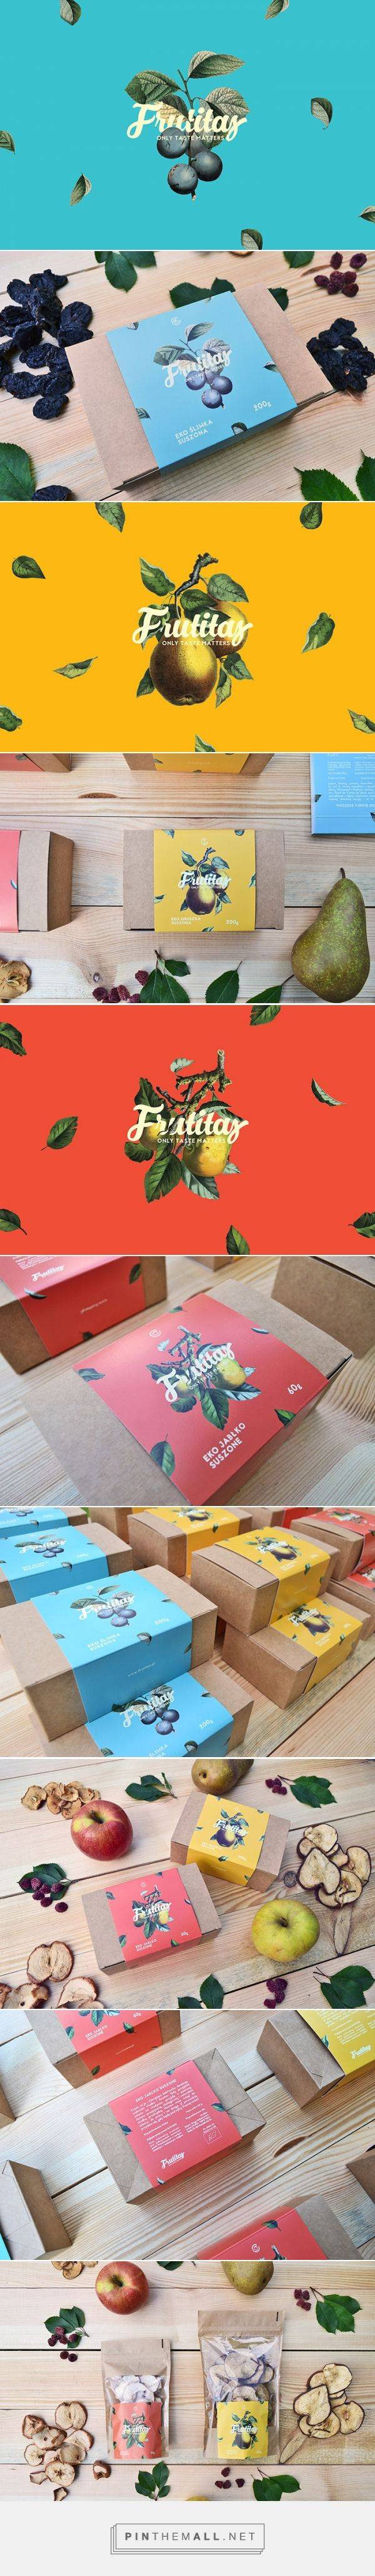 FRUTITAS processed fruit by PARIS+HENDZEL STUDIO. Pin curated by #SFields99 #packaging #design